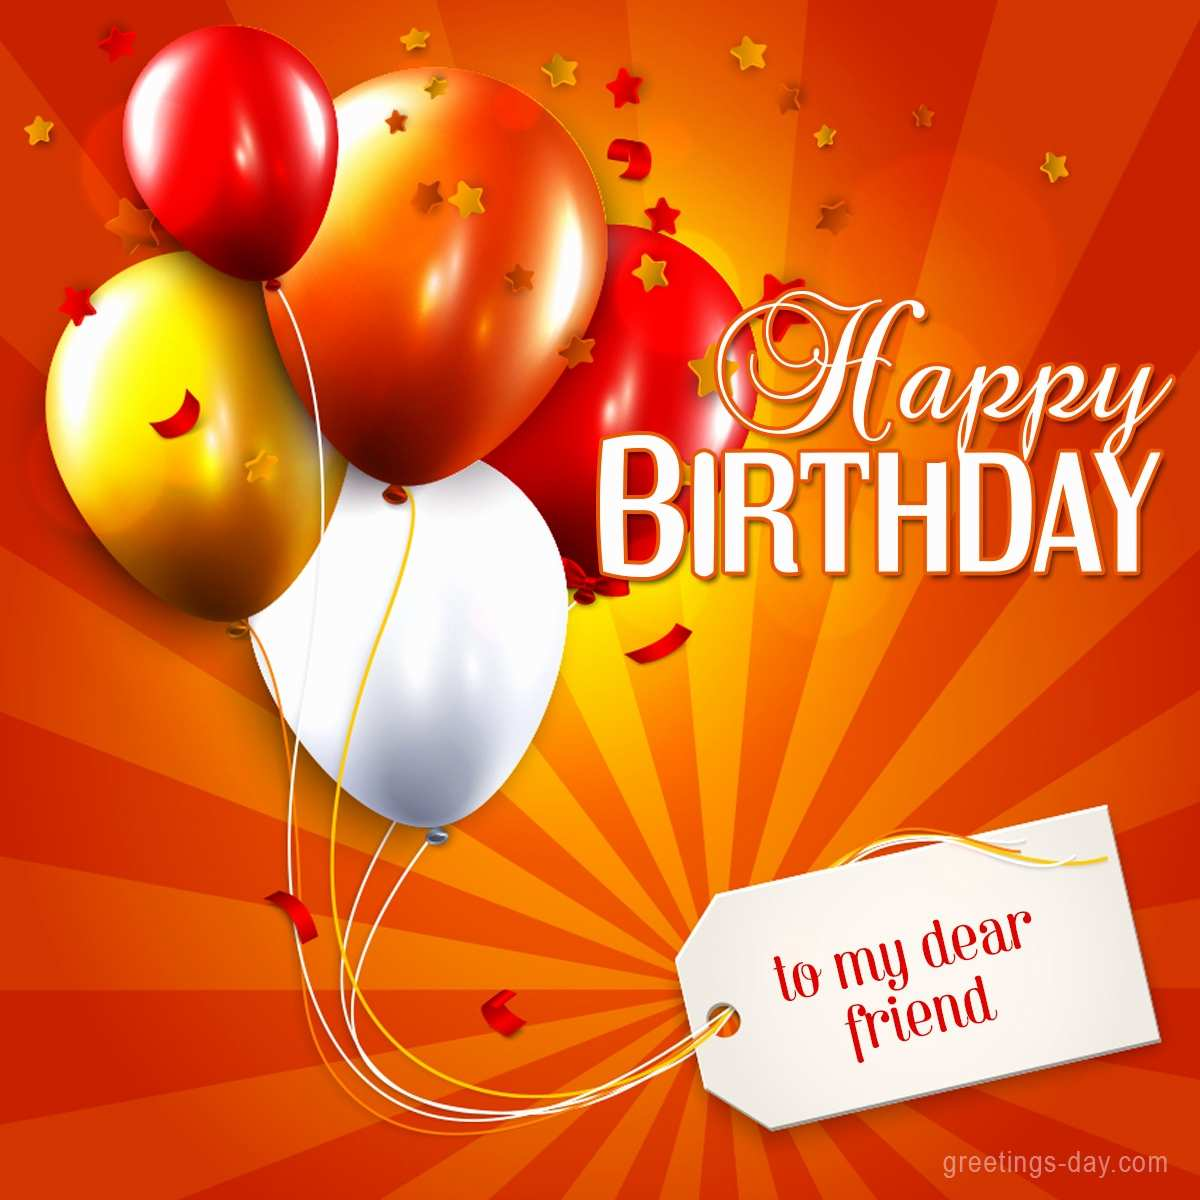 happy birthday image download for mobile ; happy-birthday-images-free-download-for-mobile-new-birthday-greeting-card-to-friend-best-pin-by-divya-sharma-of-happy-birthday-images-free-download-for-mobile